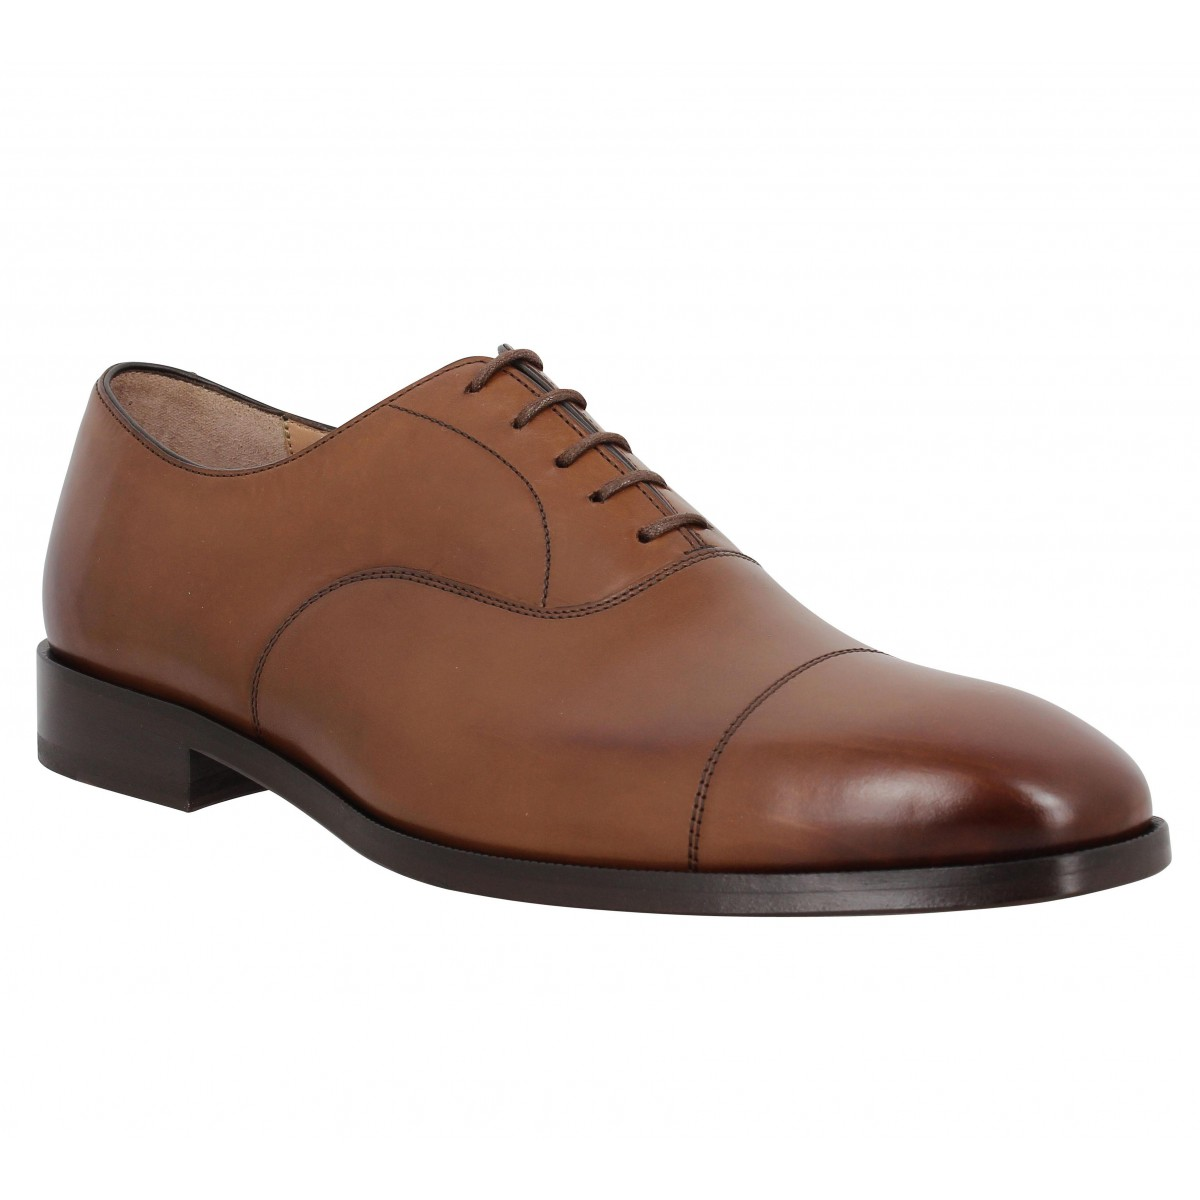 Paul Smith Homme Samo Cuir-40-tan